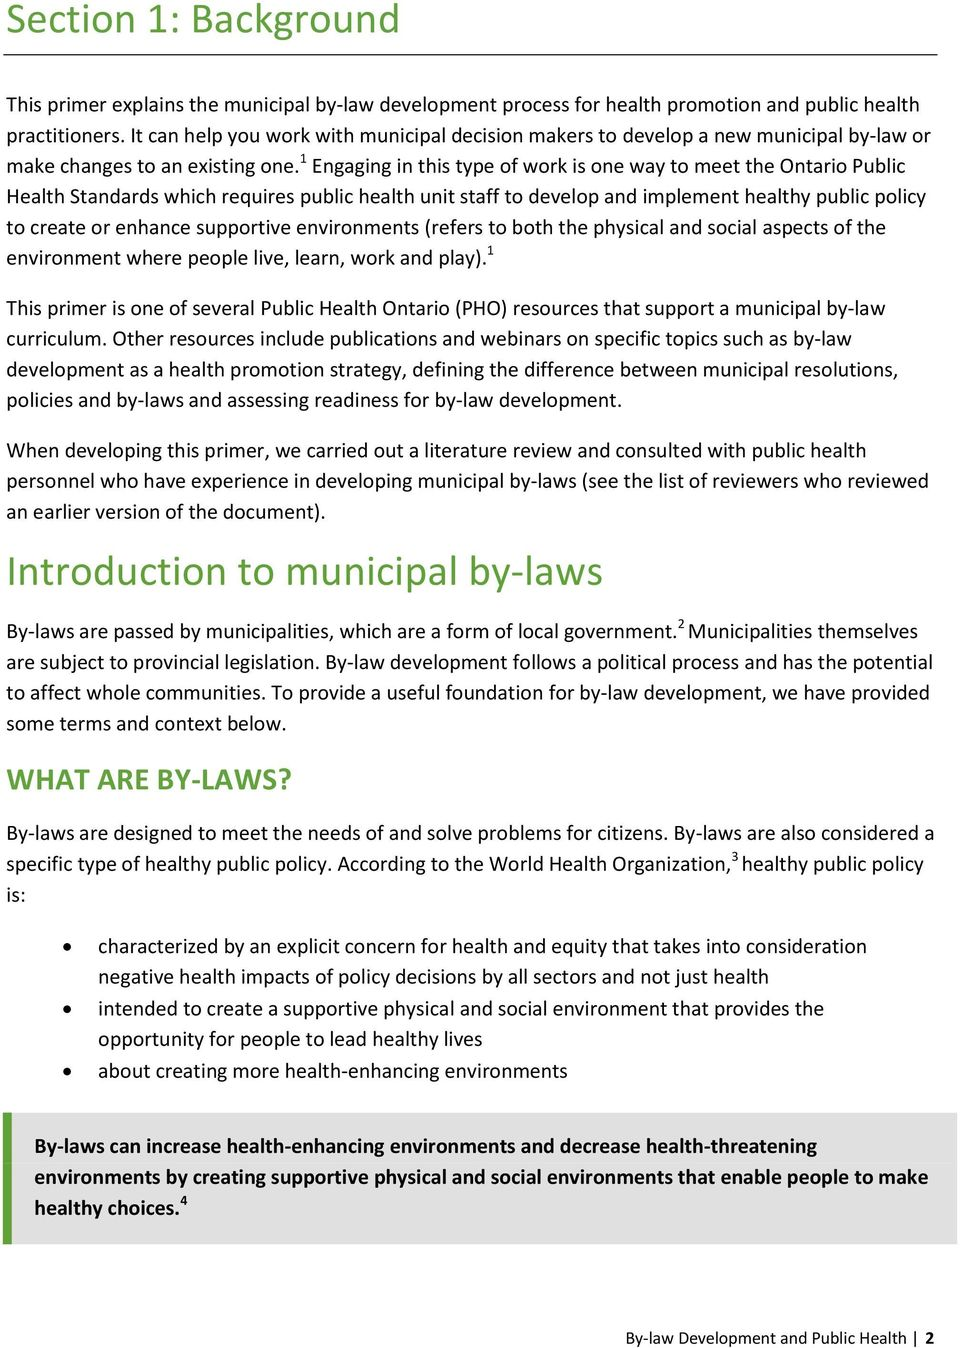 1 Engaging in this type of work is one way to meet the Ontario Public Health Standards which requires public health unit staff to develop and implement healthy public policy to create or enhance